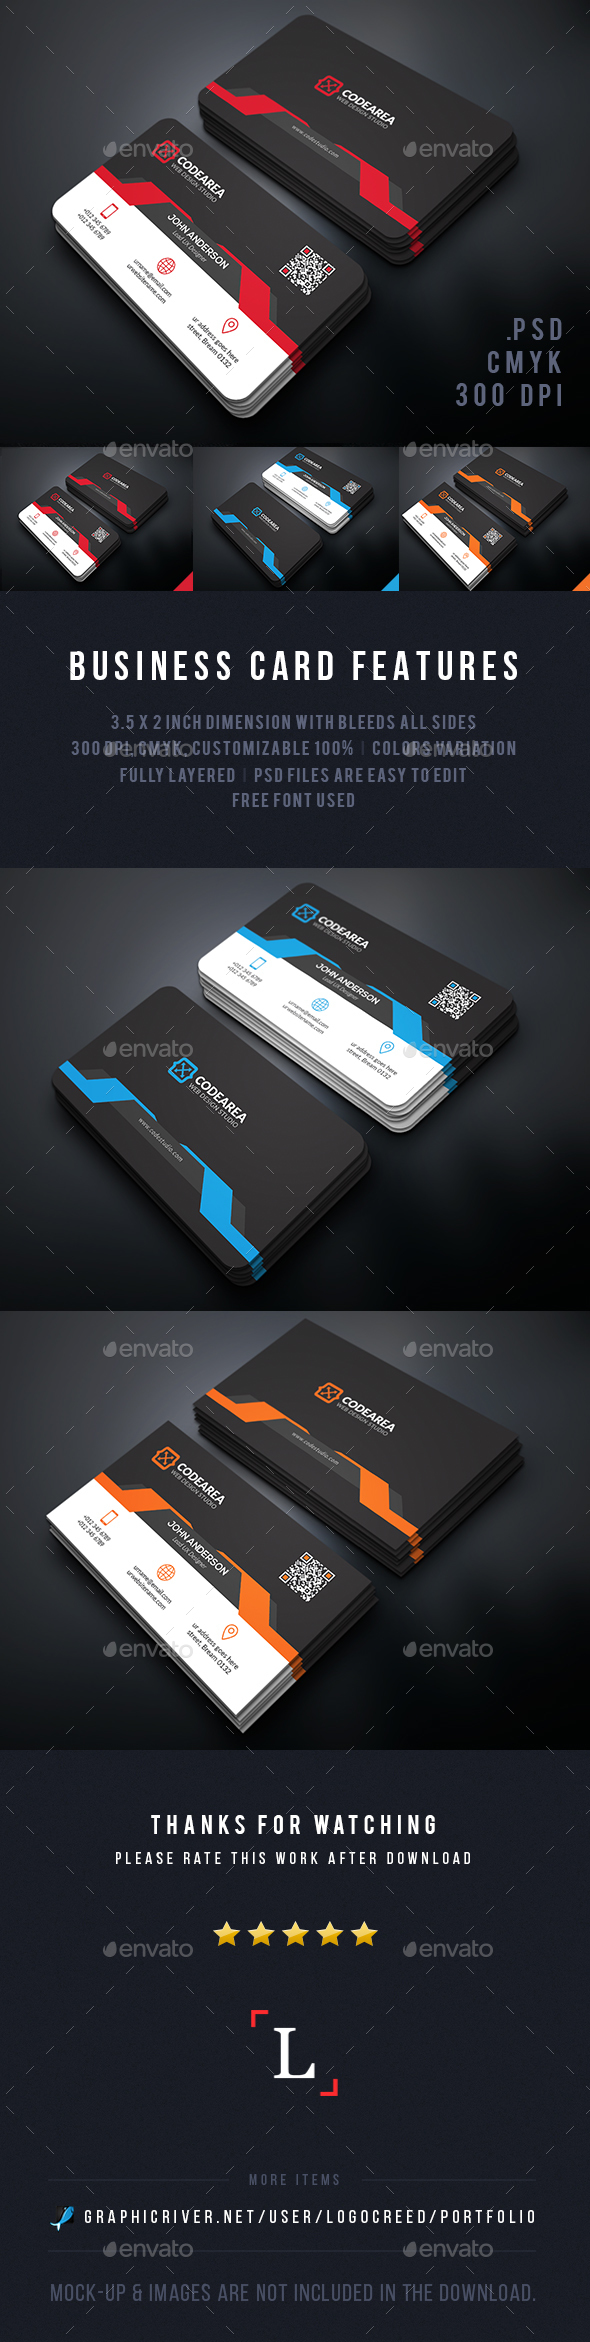 Strategic Business Cards - Business Cards Print Templates